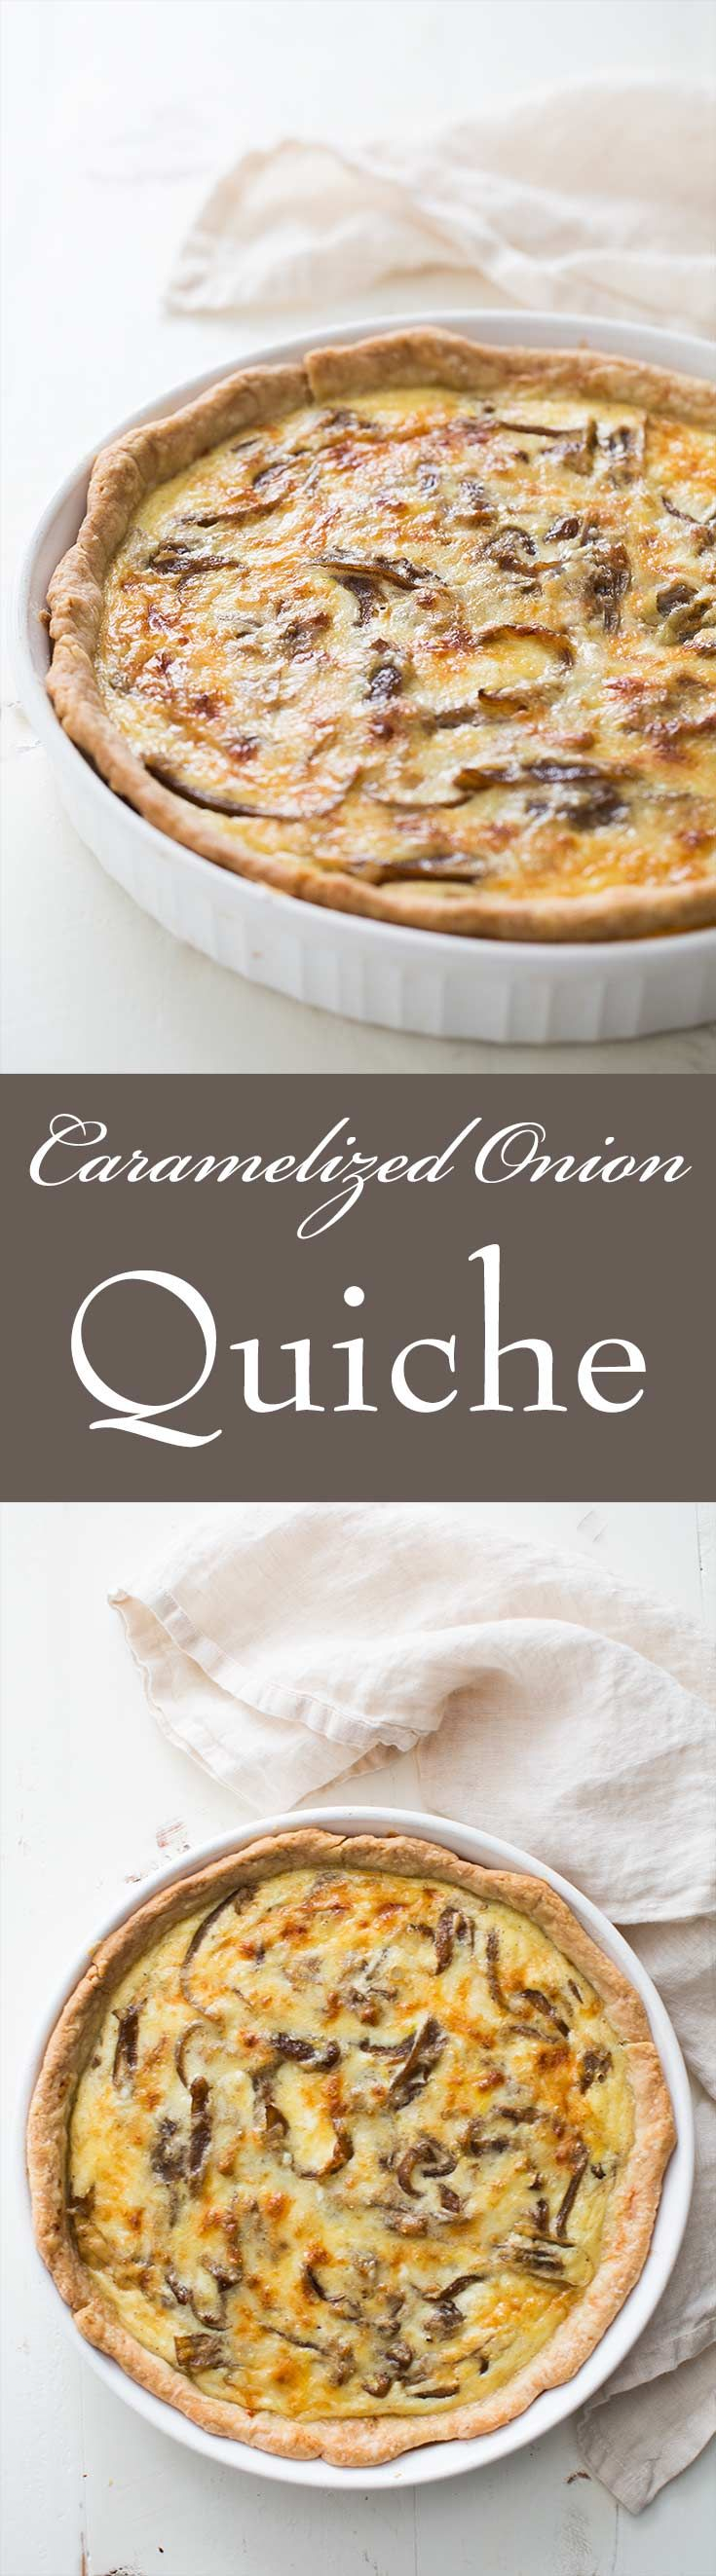 caramelized onion quiche rich and creamy quiche with